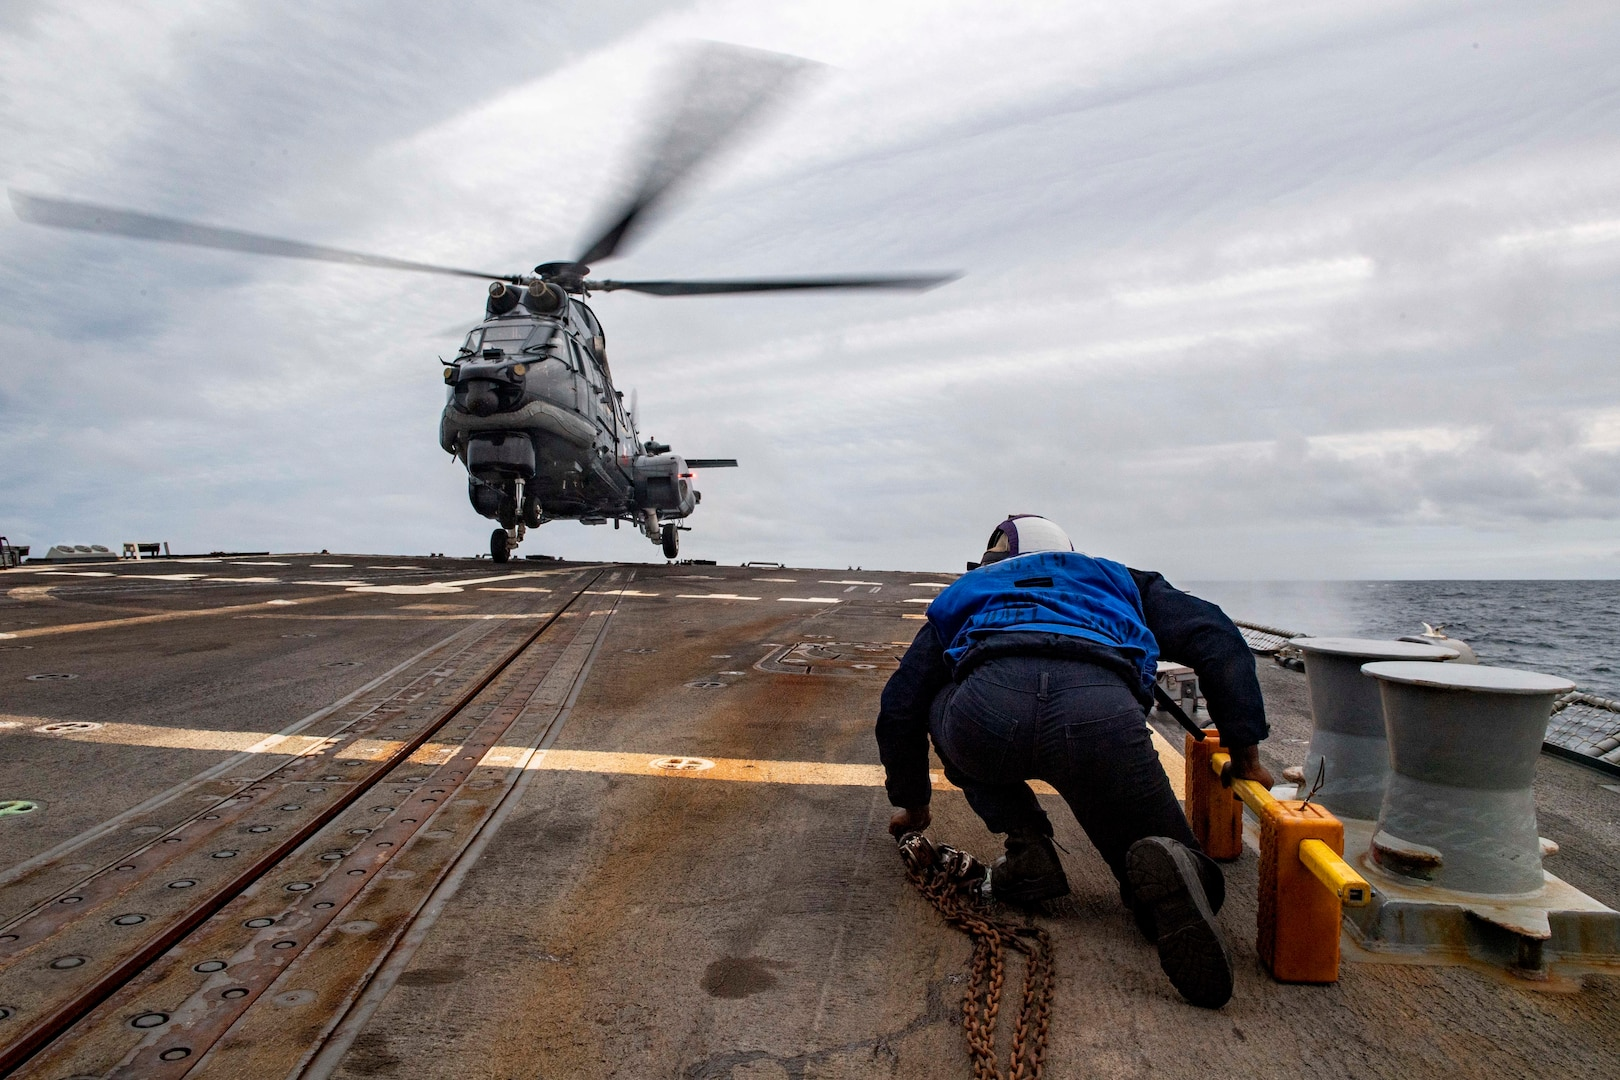 A U.S. Navy sailor prepares to chock and chain a helicopter.